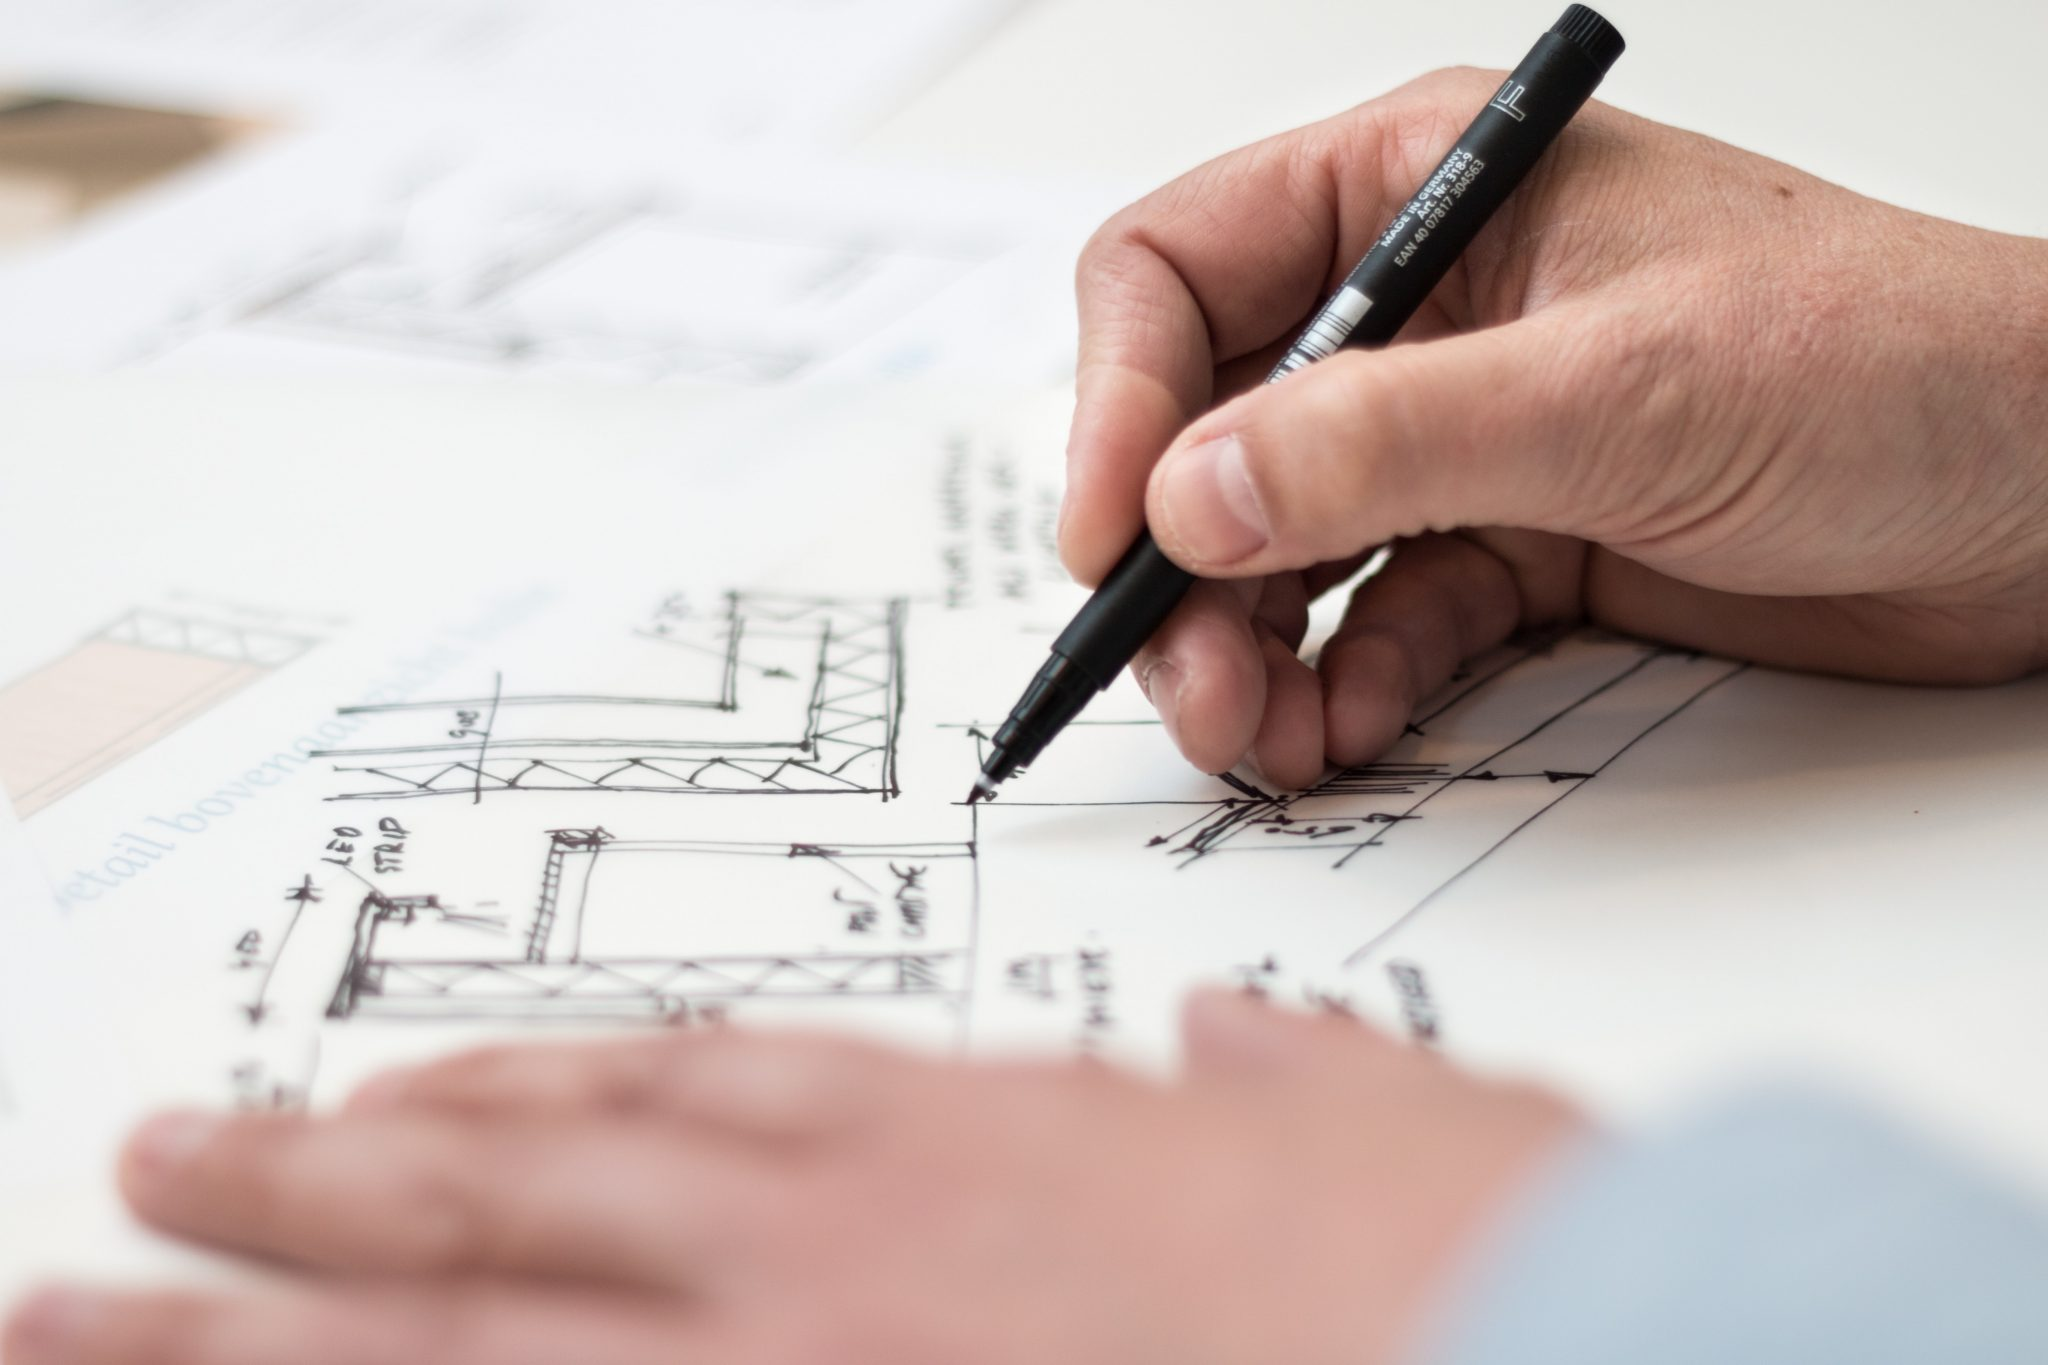 Find House Plans For Your Old House Blueprint Search Nethouseplansnethouseplans